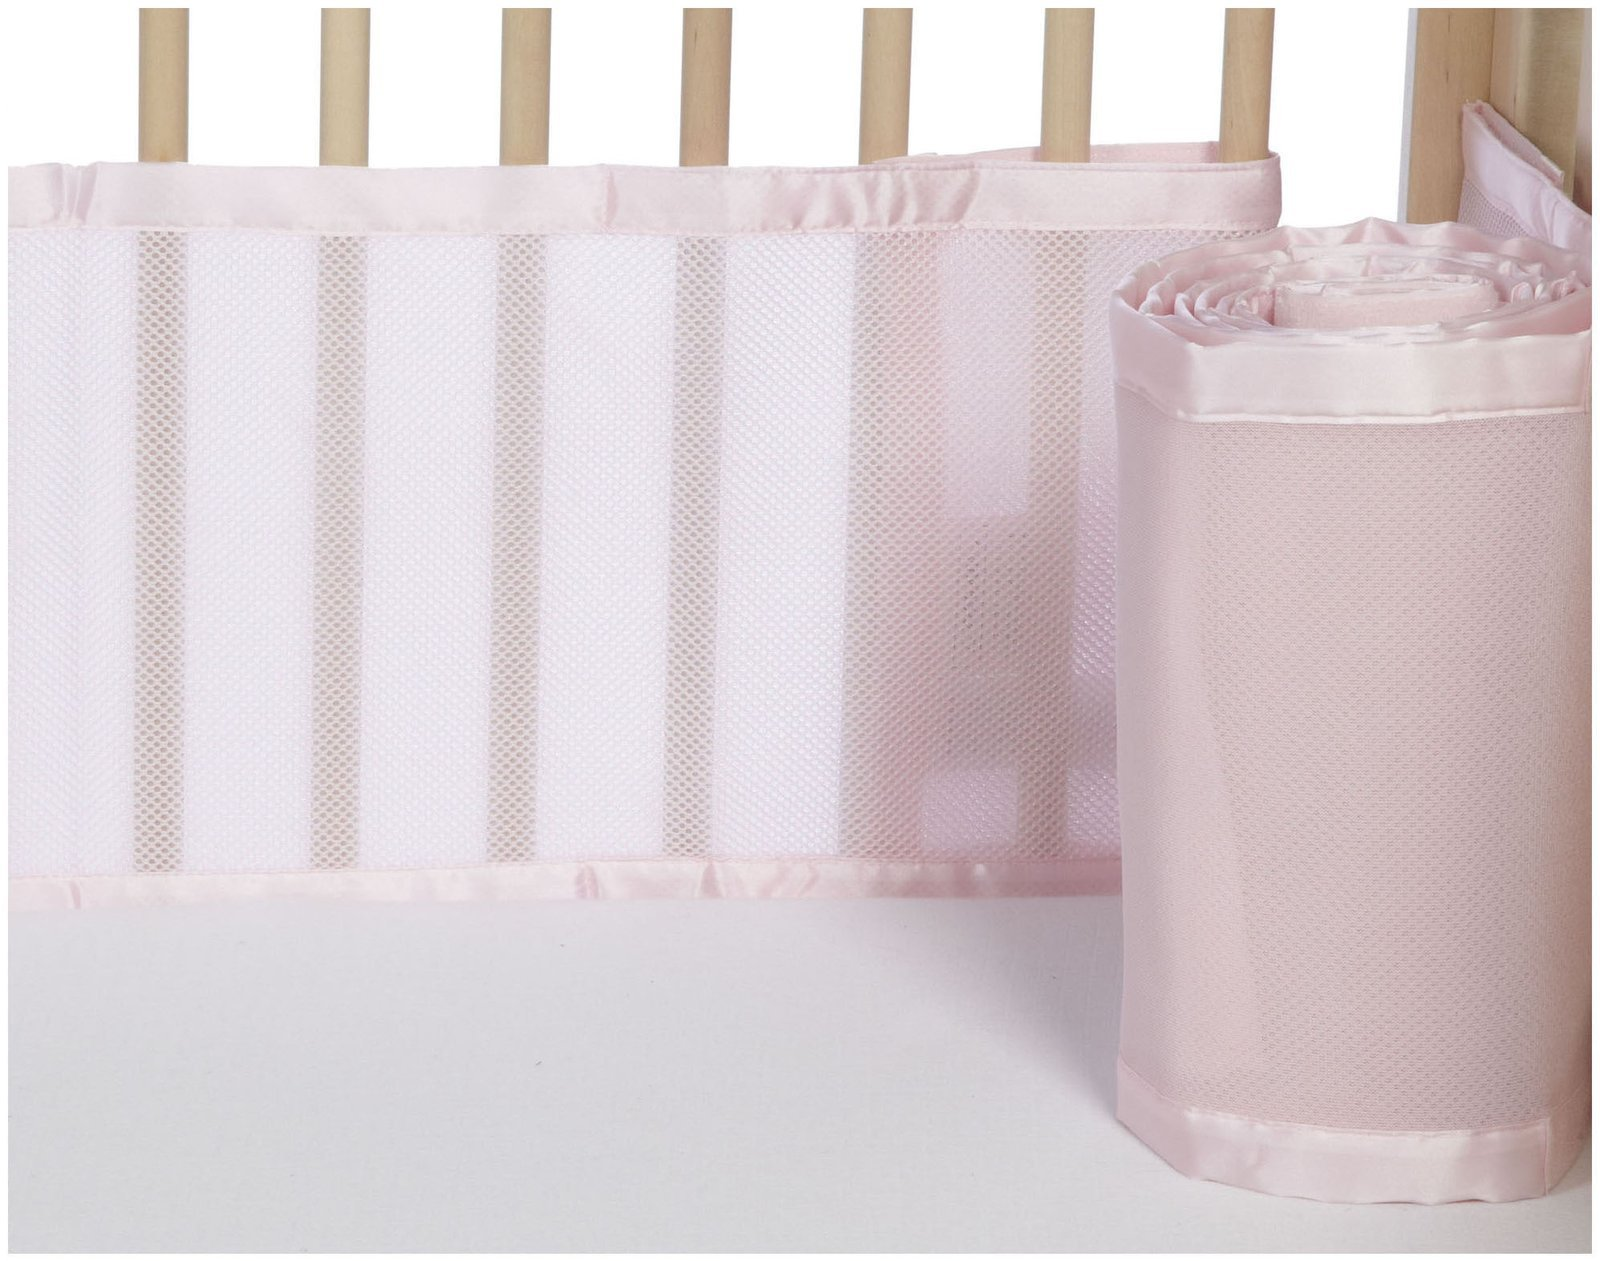 BreathableBaby Classic Breathable Mesh Crib Liner - Light Pink by BreathableBaby